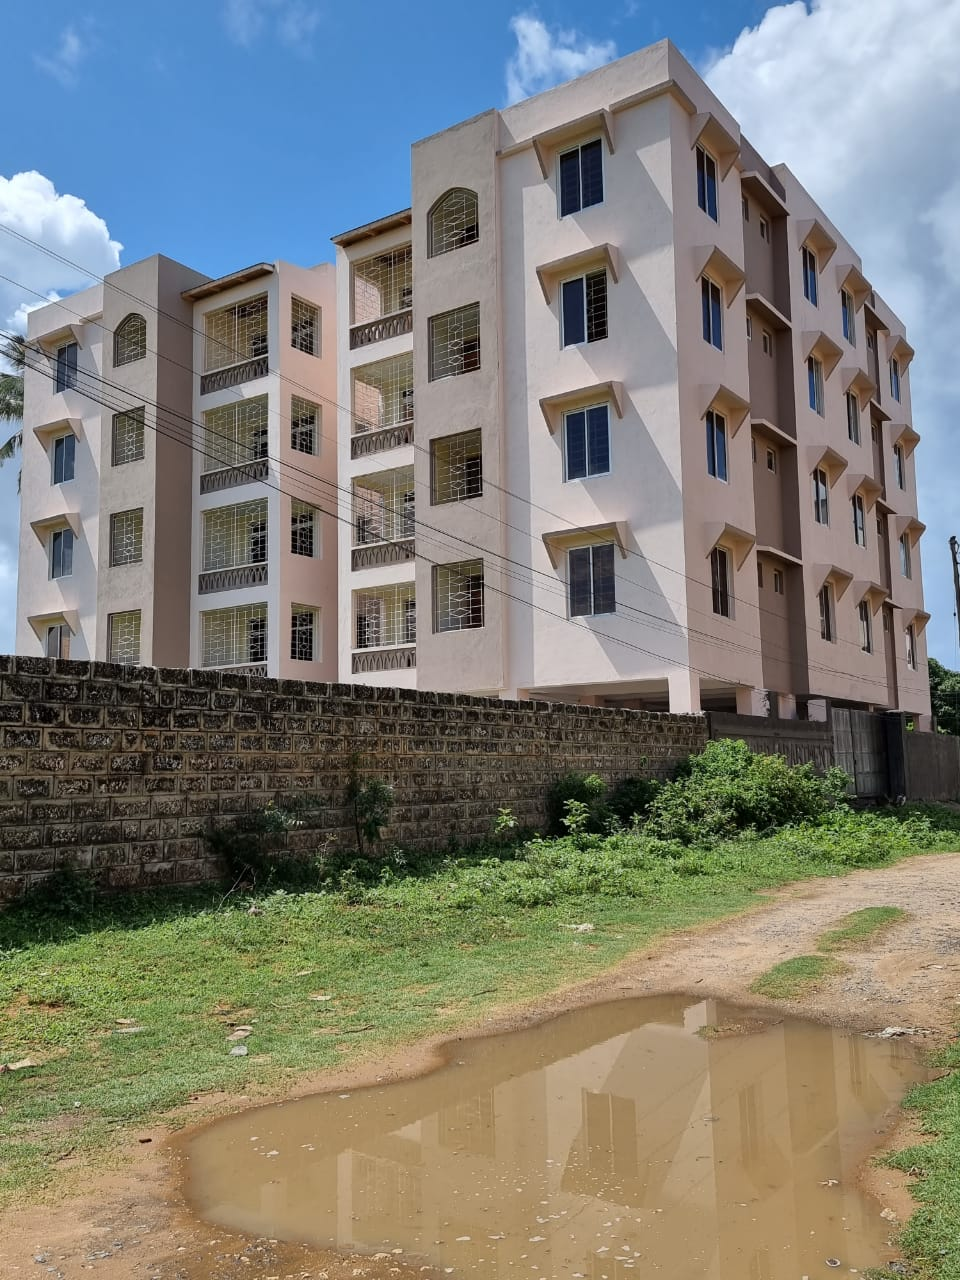 2 br apartment for sale in mtwapa